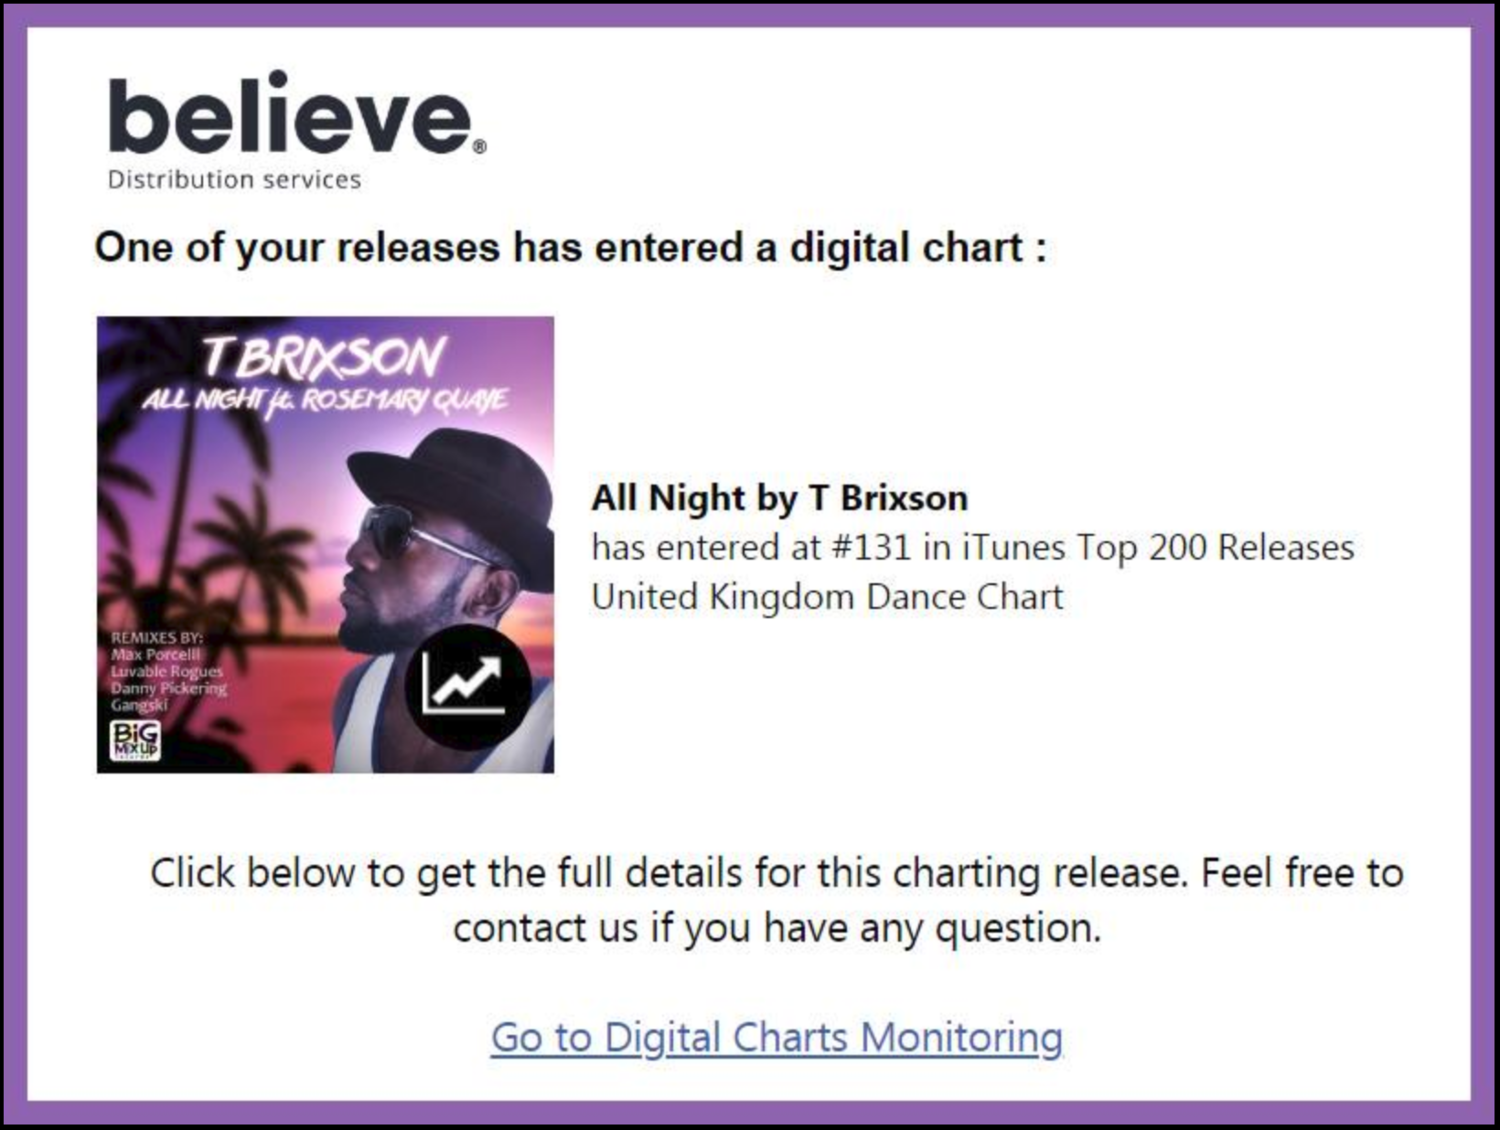 All Night HITS #131 in iTunes Top 200 Releases UK Dance Chart!! — T